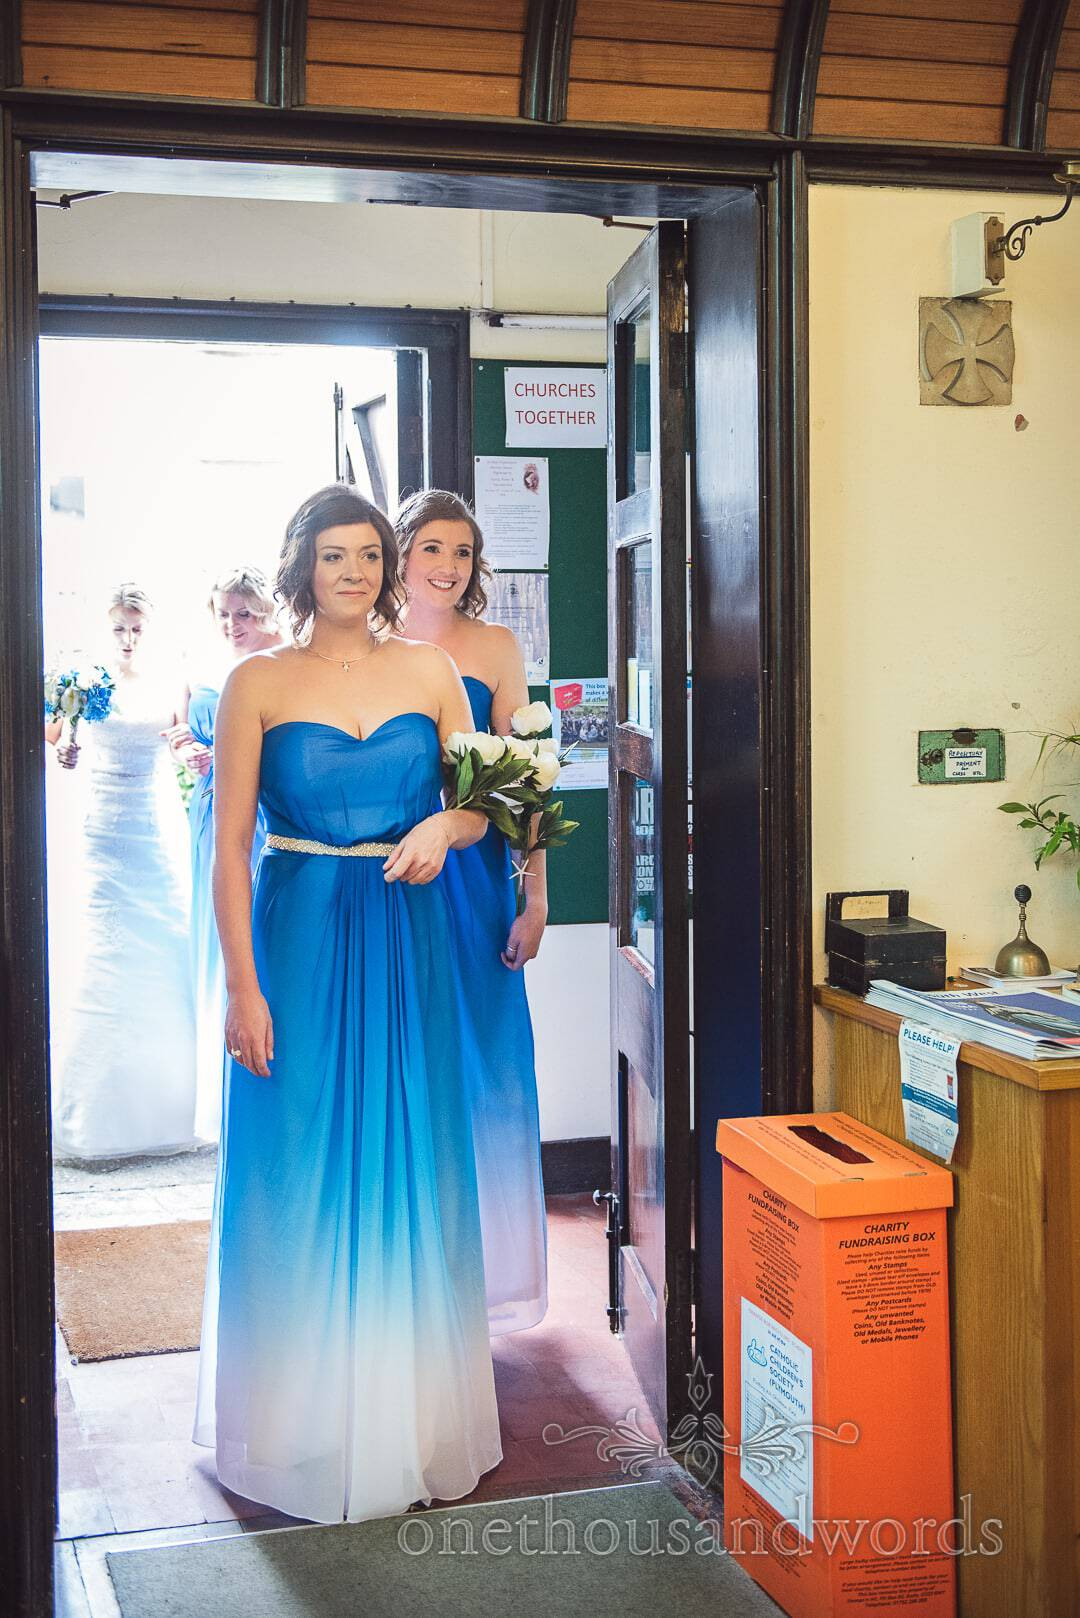 Bridesmaids in blue and white graduated bridesmaids dresses enter church wedding ceremony